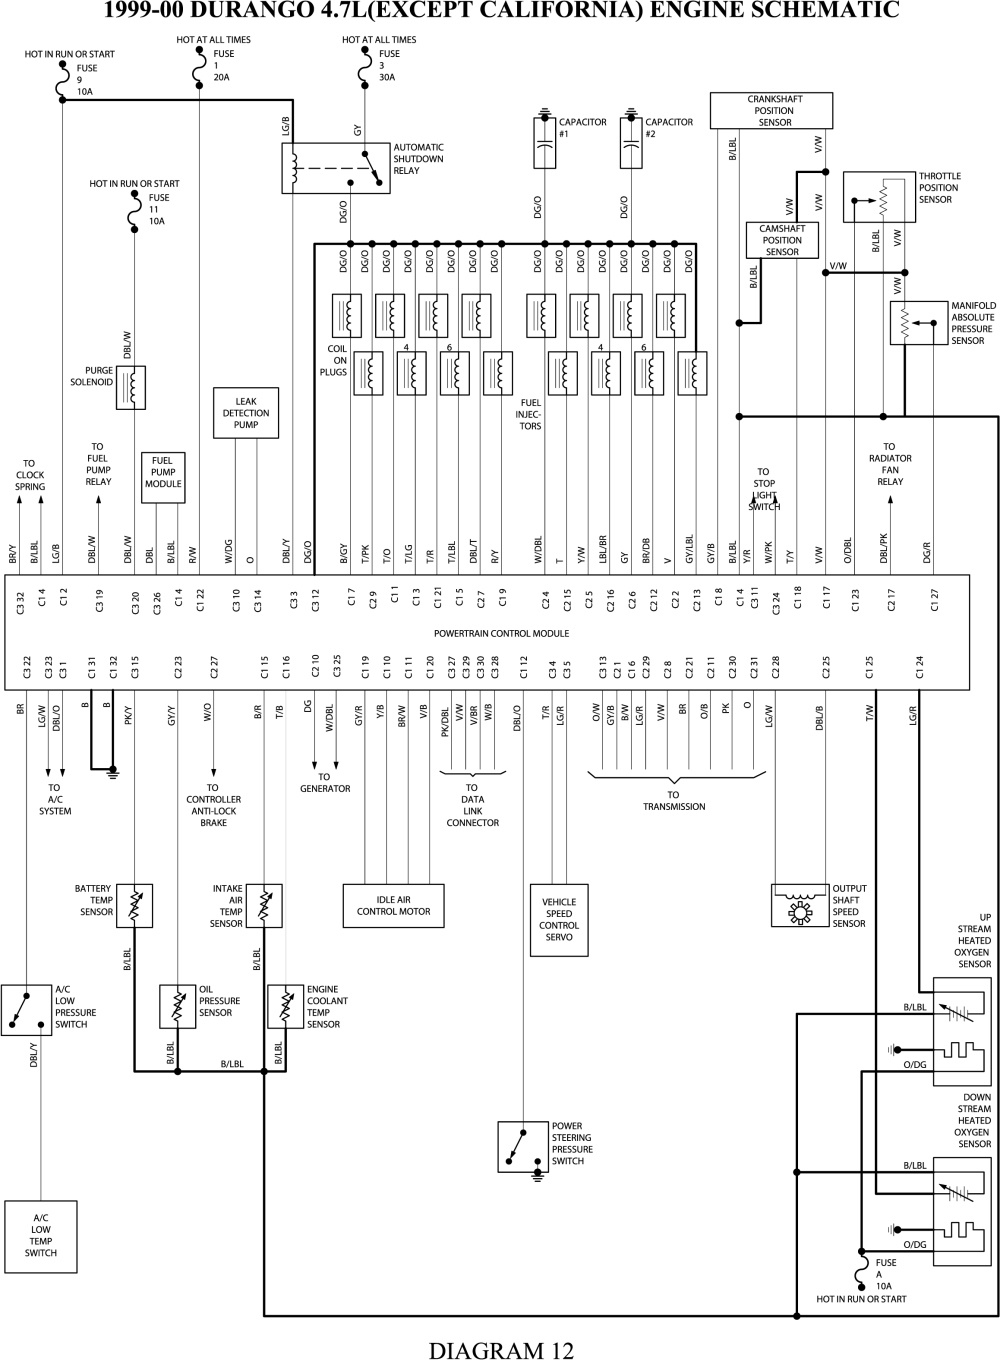 1998 Dodge Ram 2500 Wiring Harness | Wiring Library - 1998 Dodge Ram Trailer Wiring Diagram